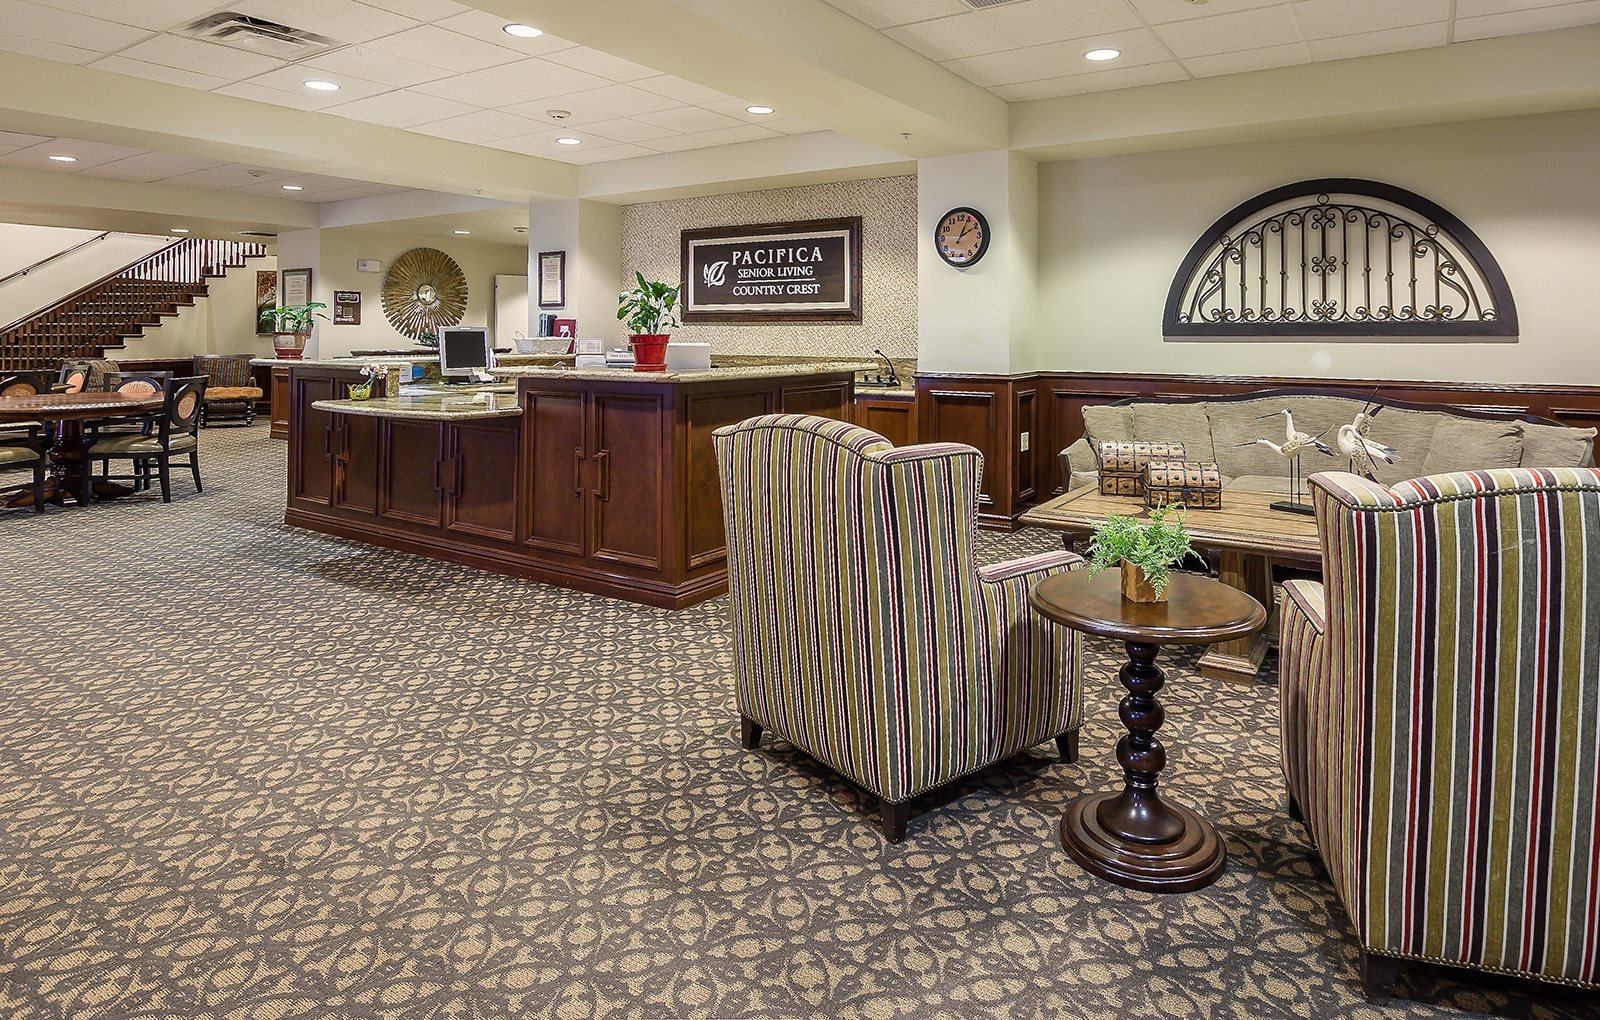 Palatial Reception Area at Pacifica Senior Living Country Crest, Oroville, CA, 95966